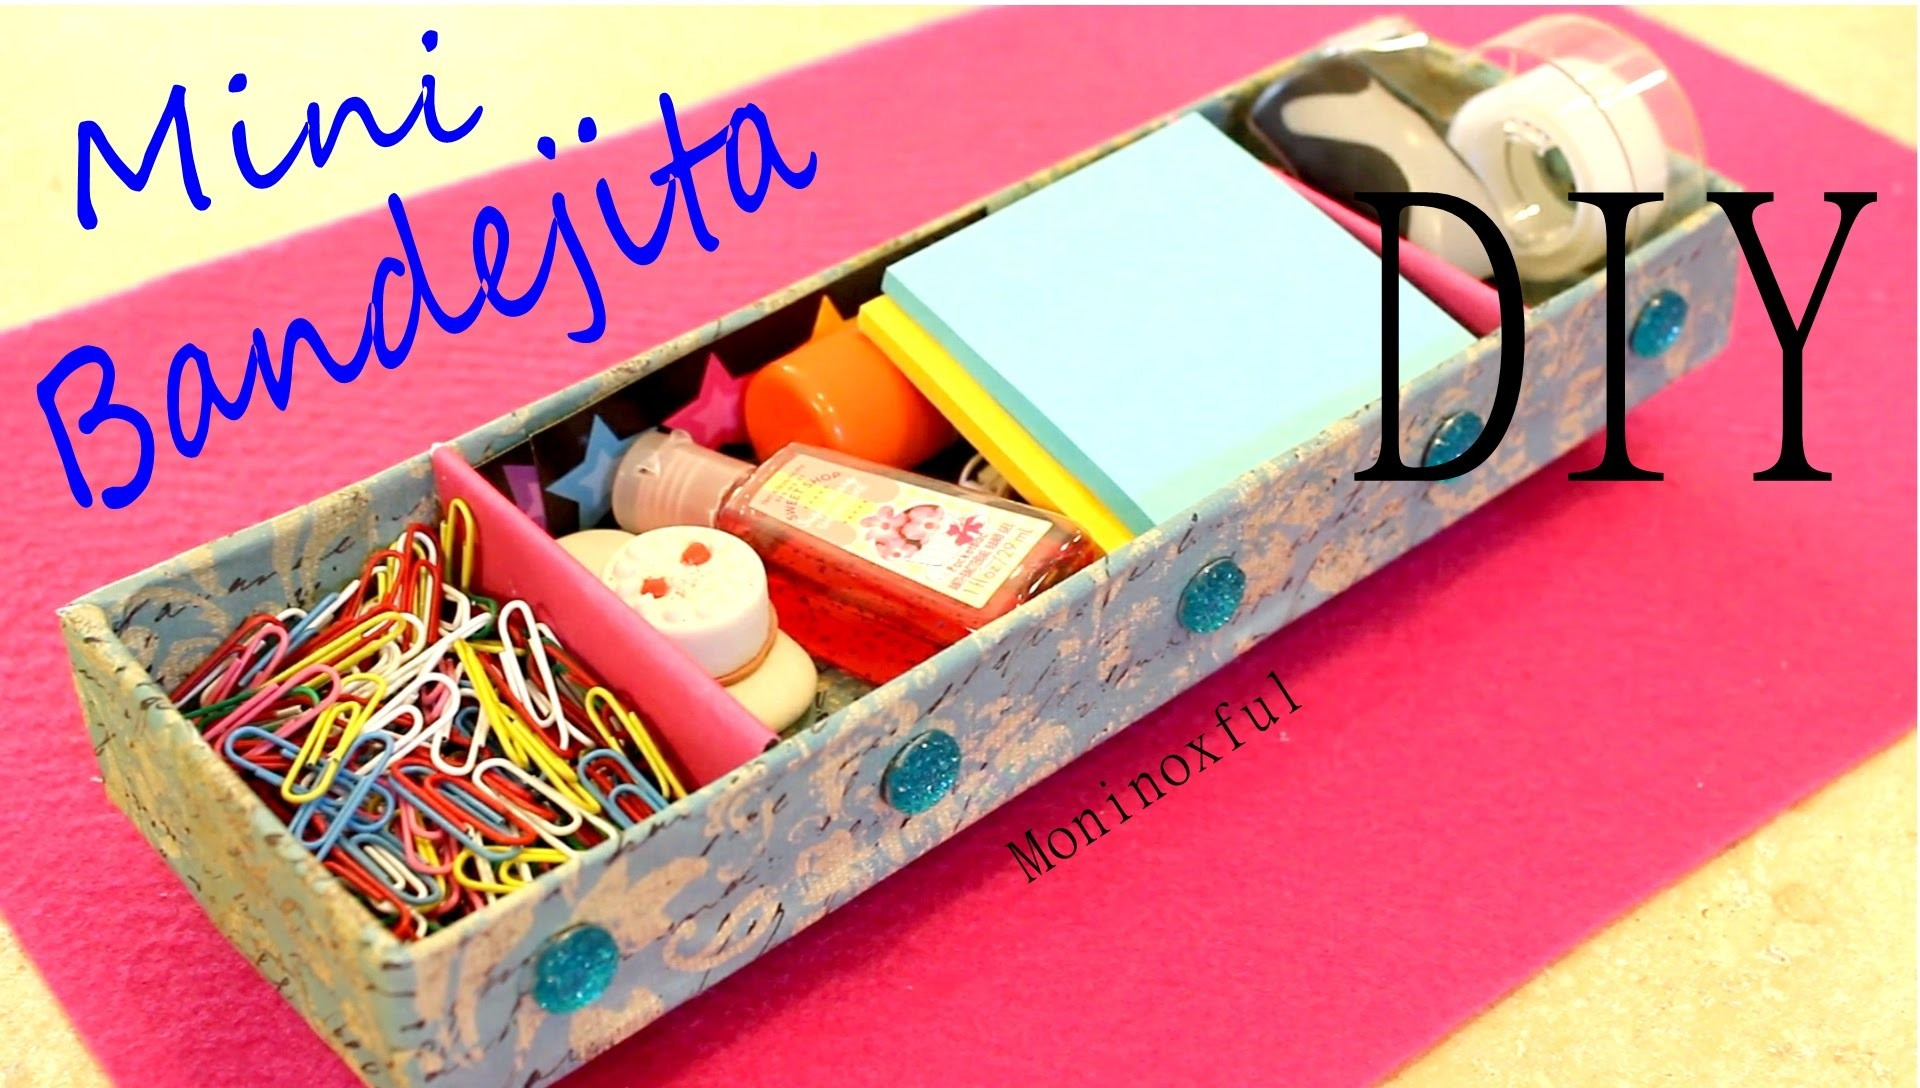 Mini Bandejita para Escritorio - Mini Desk Tray